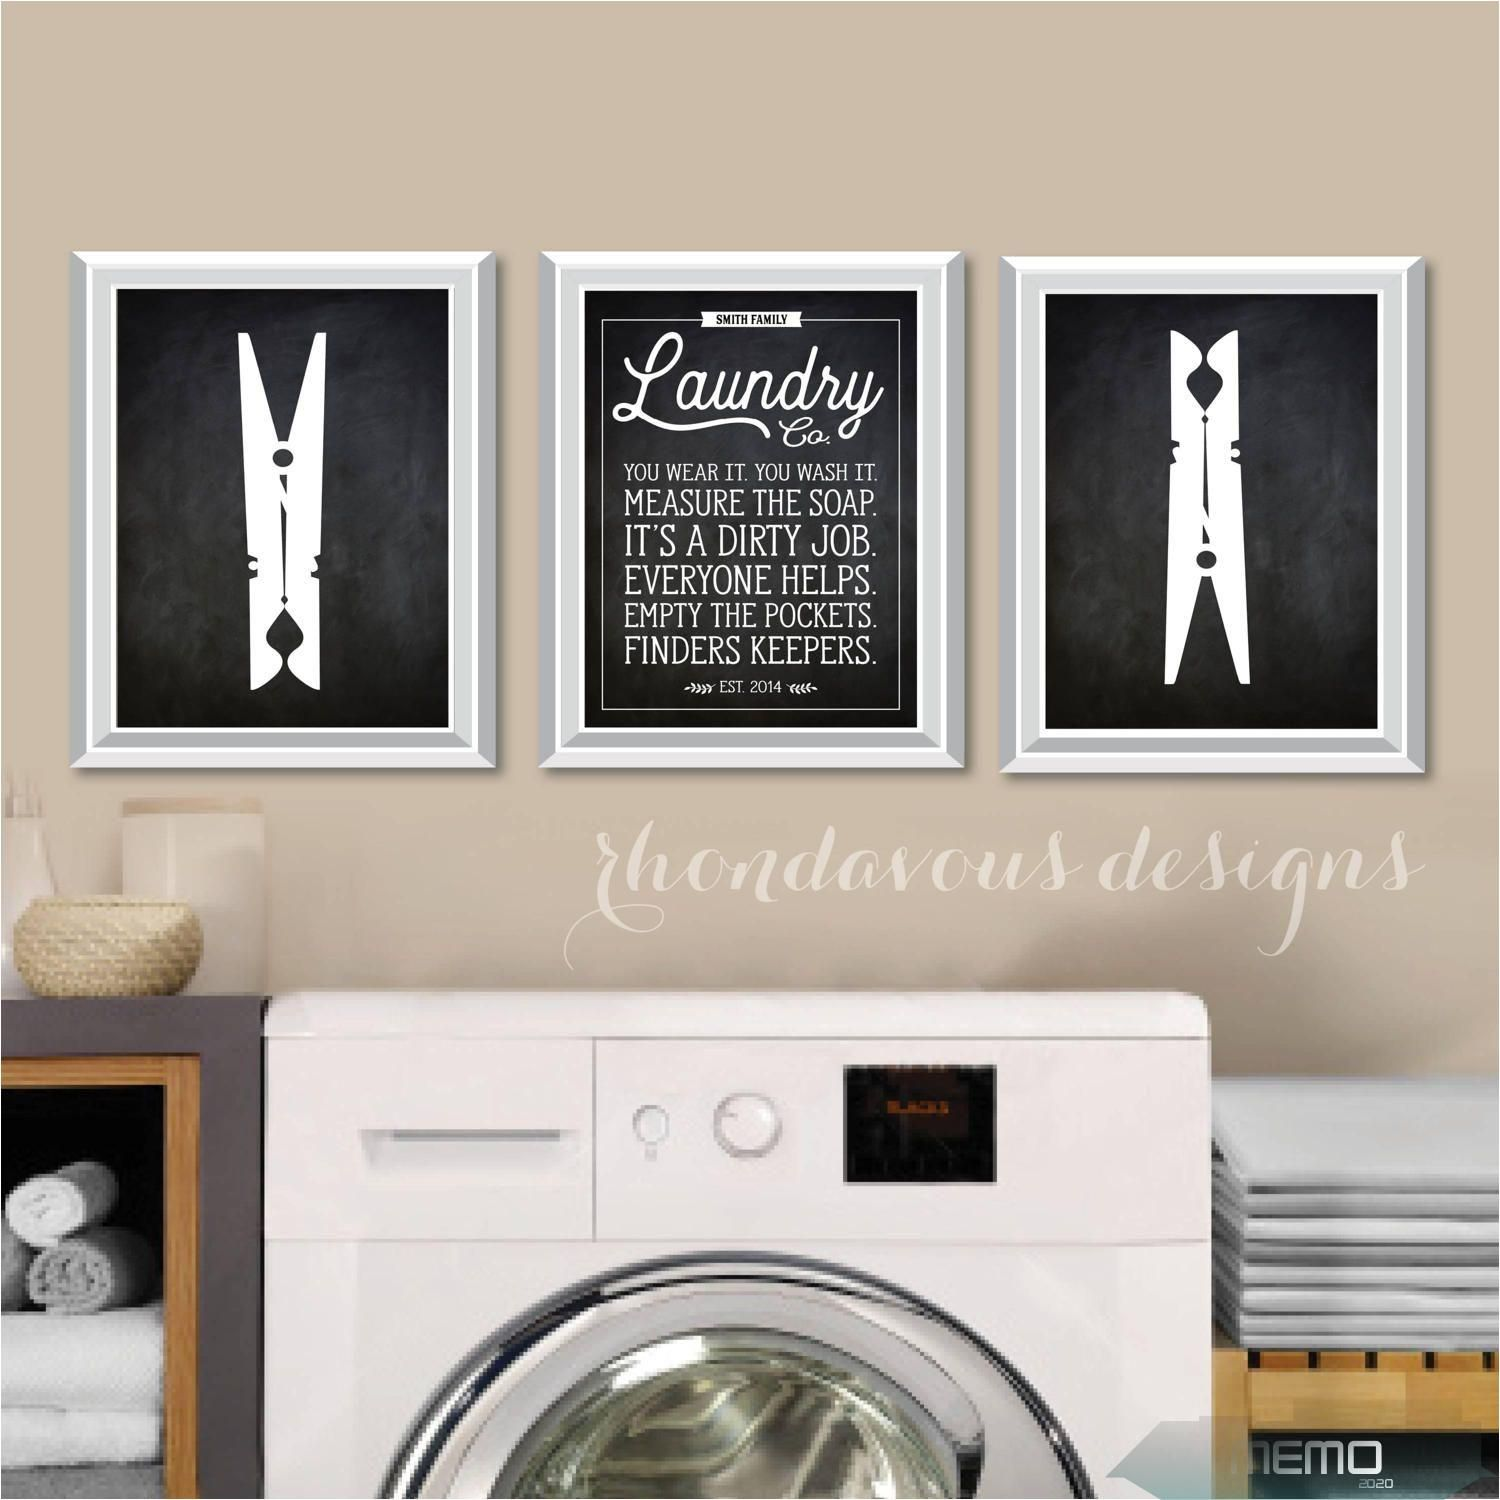 Jun 2 2020 This Pin Was Discovered By Design At Redwood Construction Discover And Save Your Own Pin In 2020 Laundry Wall Art Laundry Room Art Laundry Room Signs